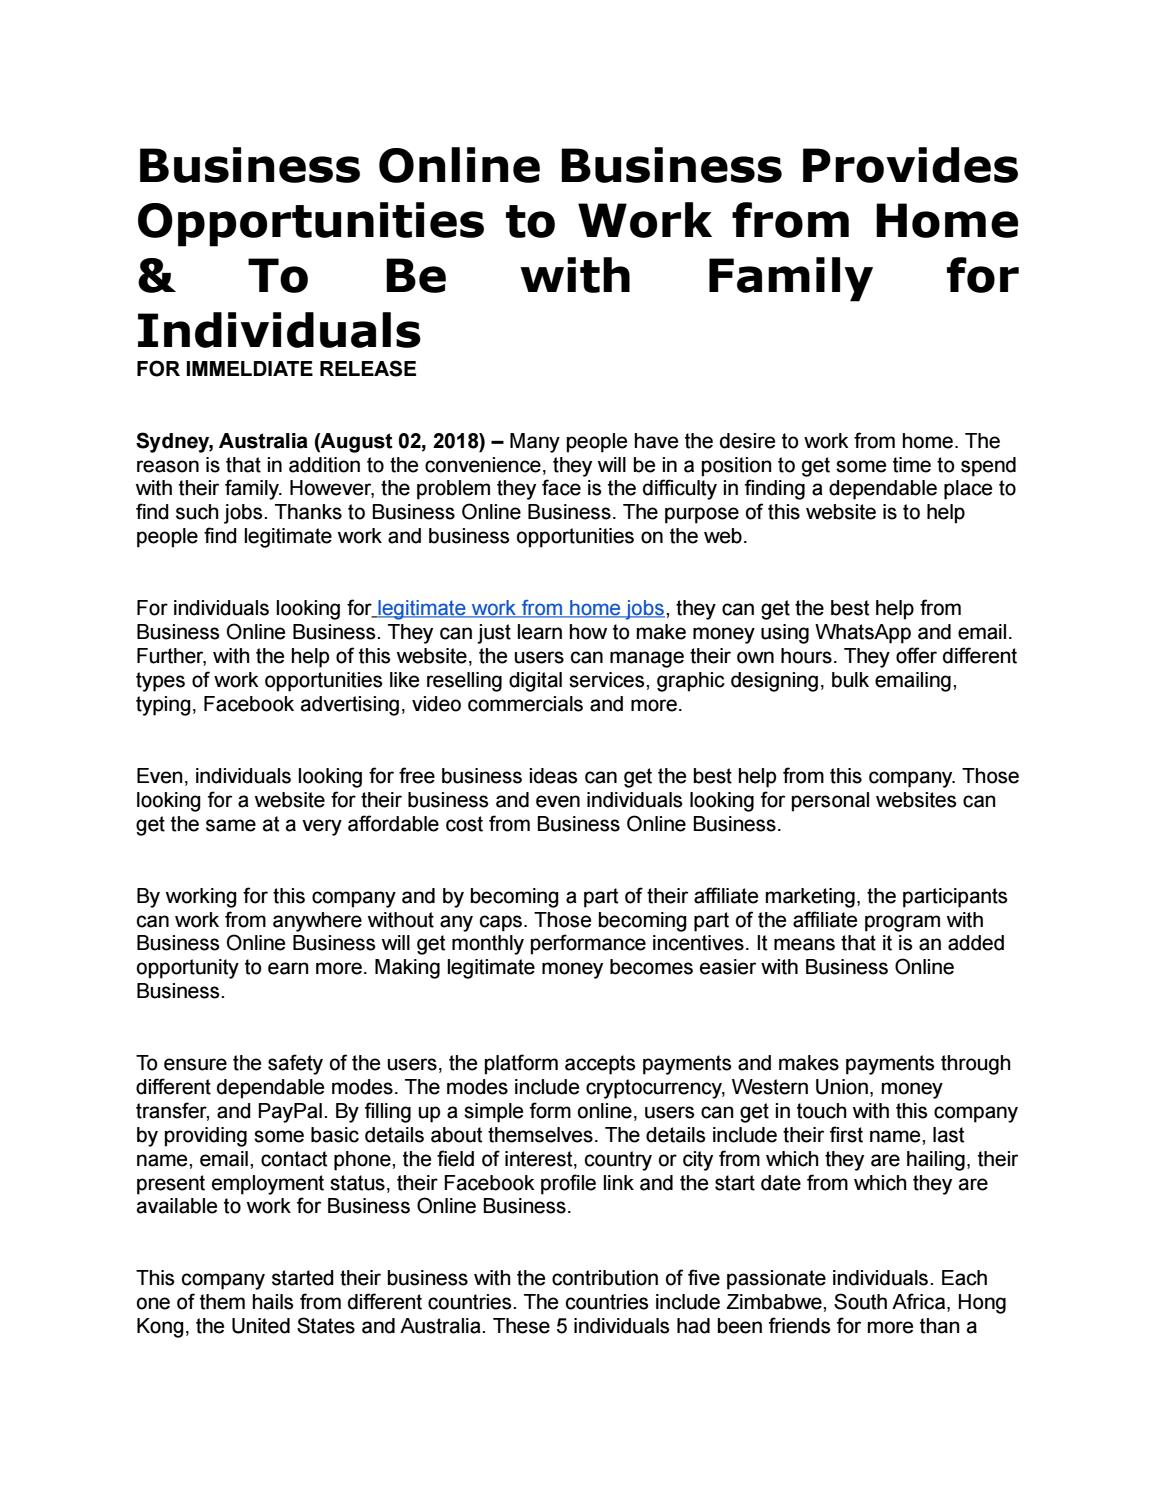 Business Online Business Provides Opportunities to Work from Home ...